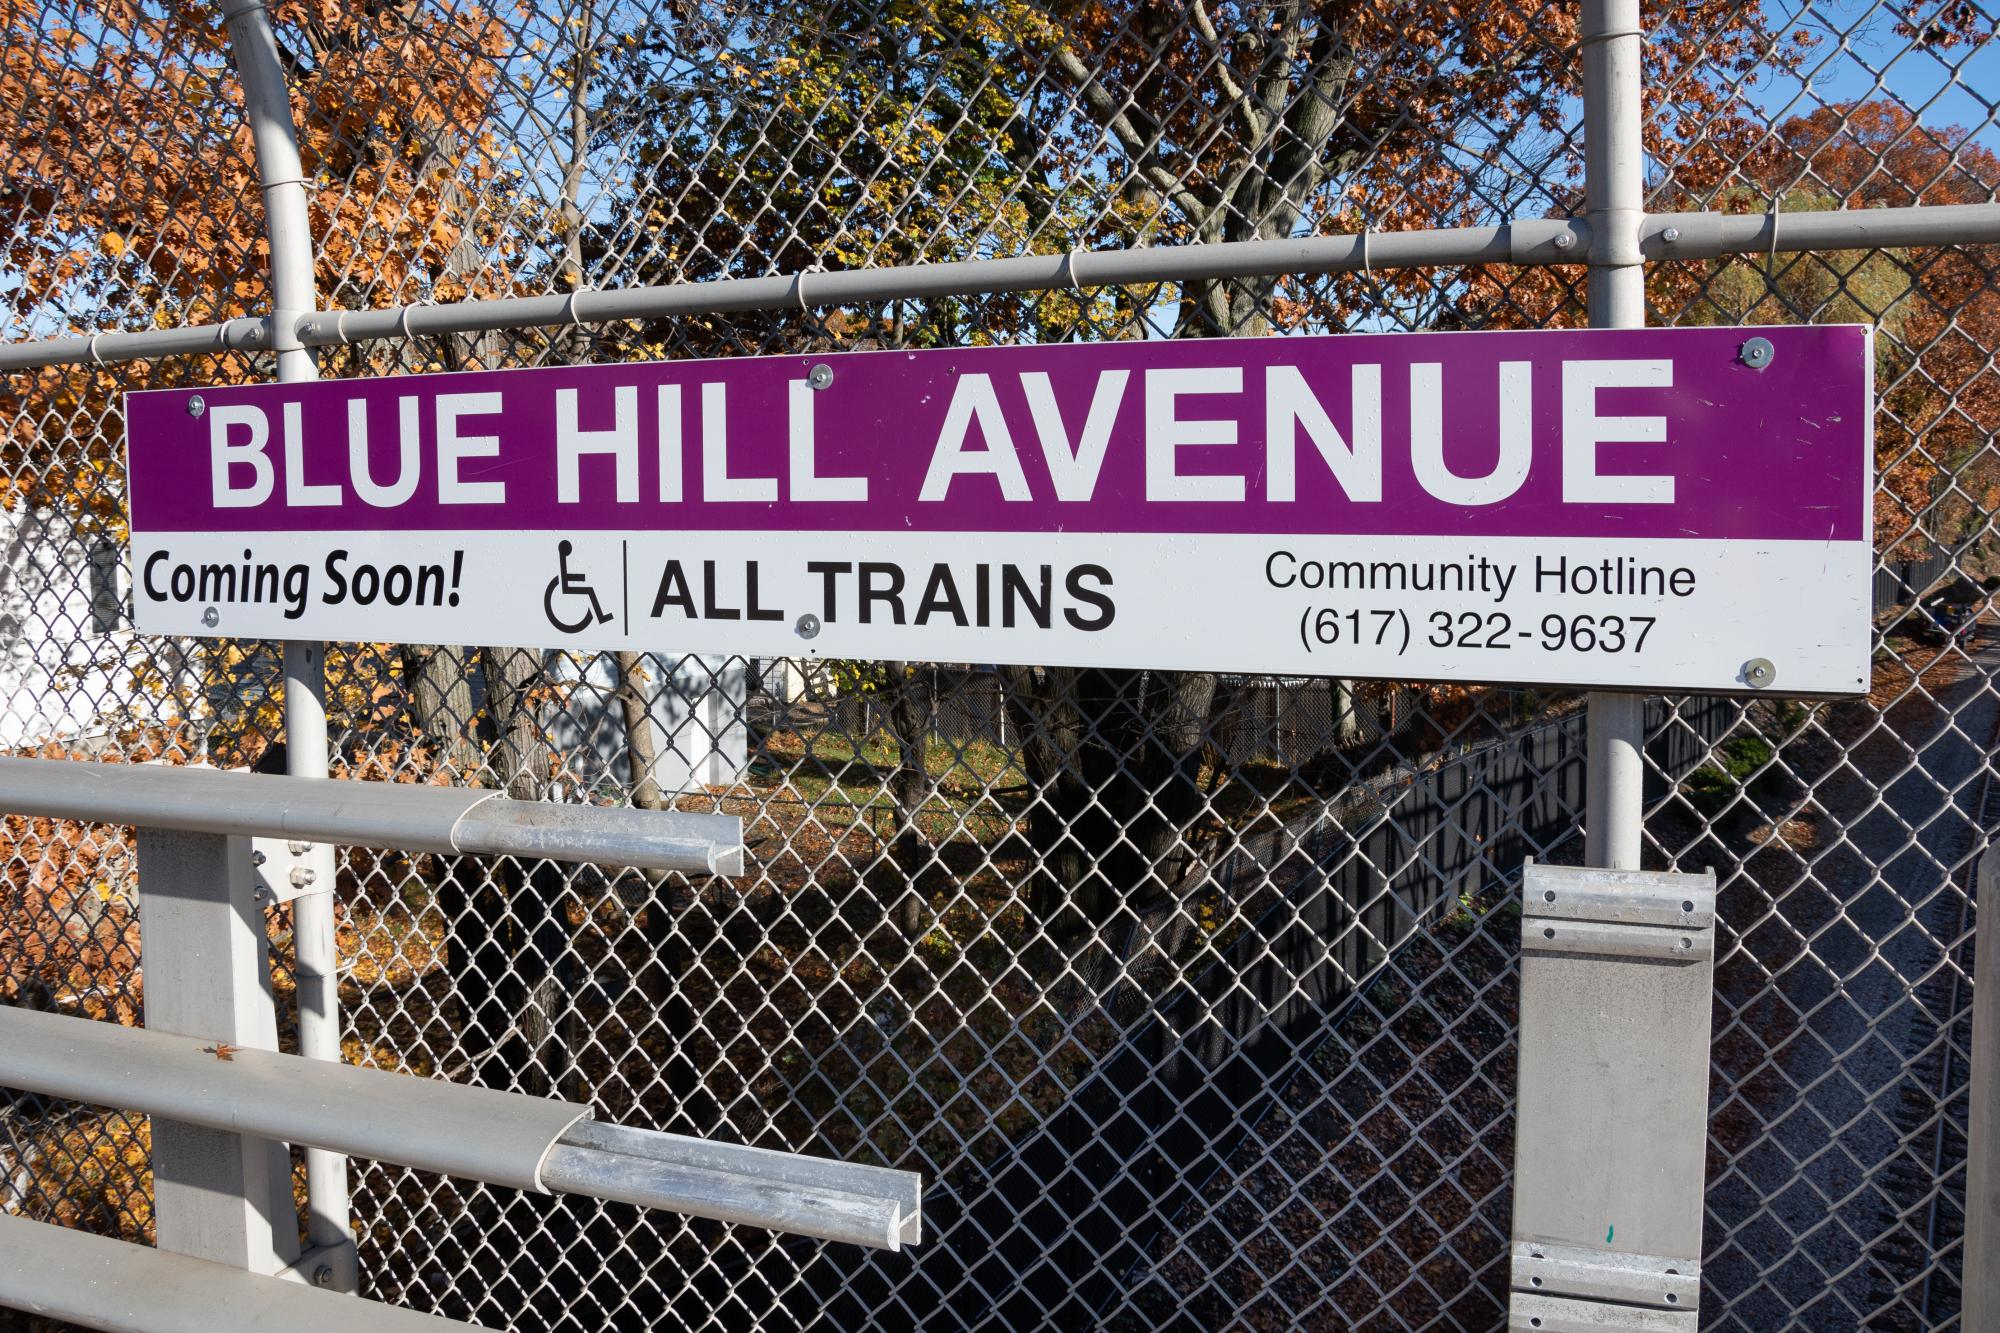 Commuter Rail sign